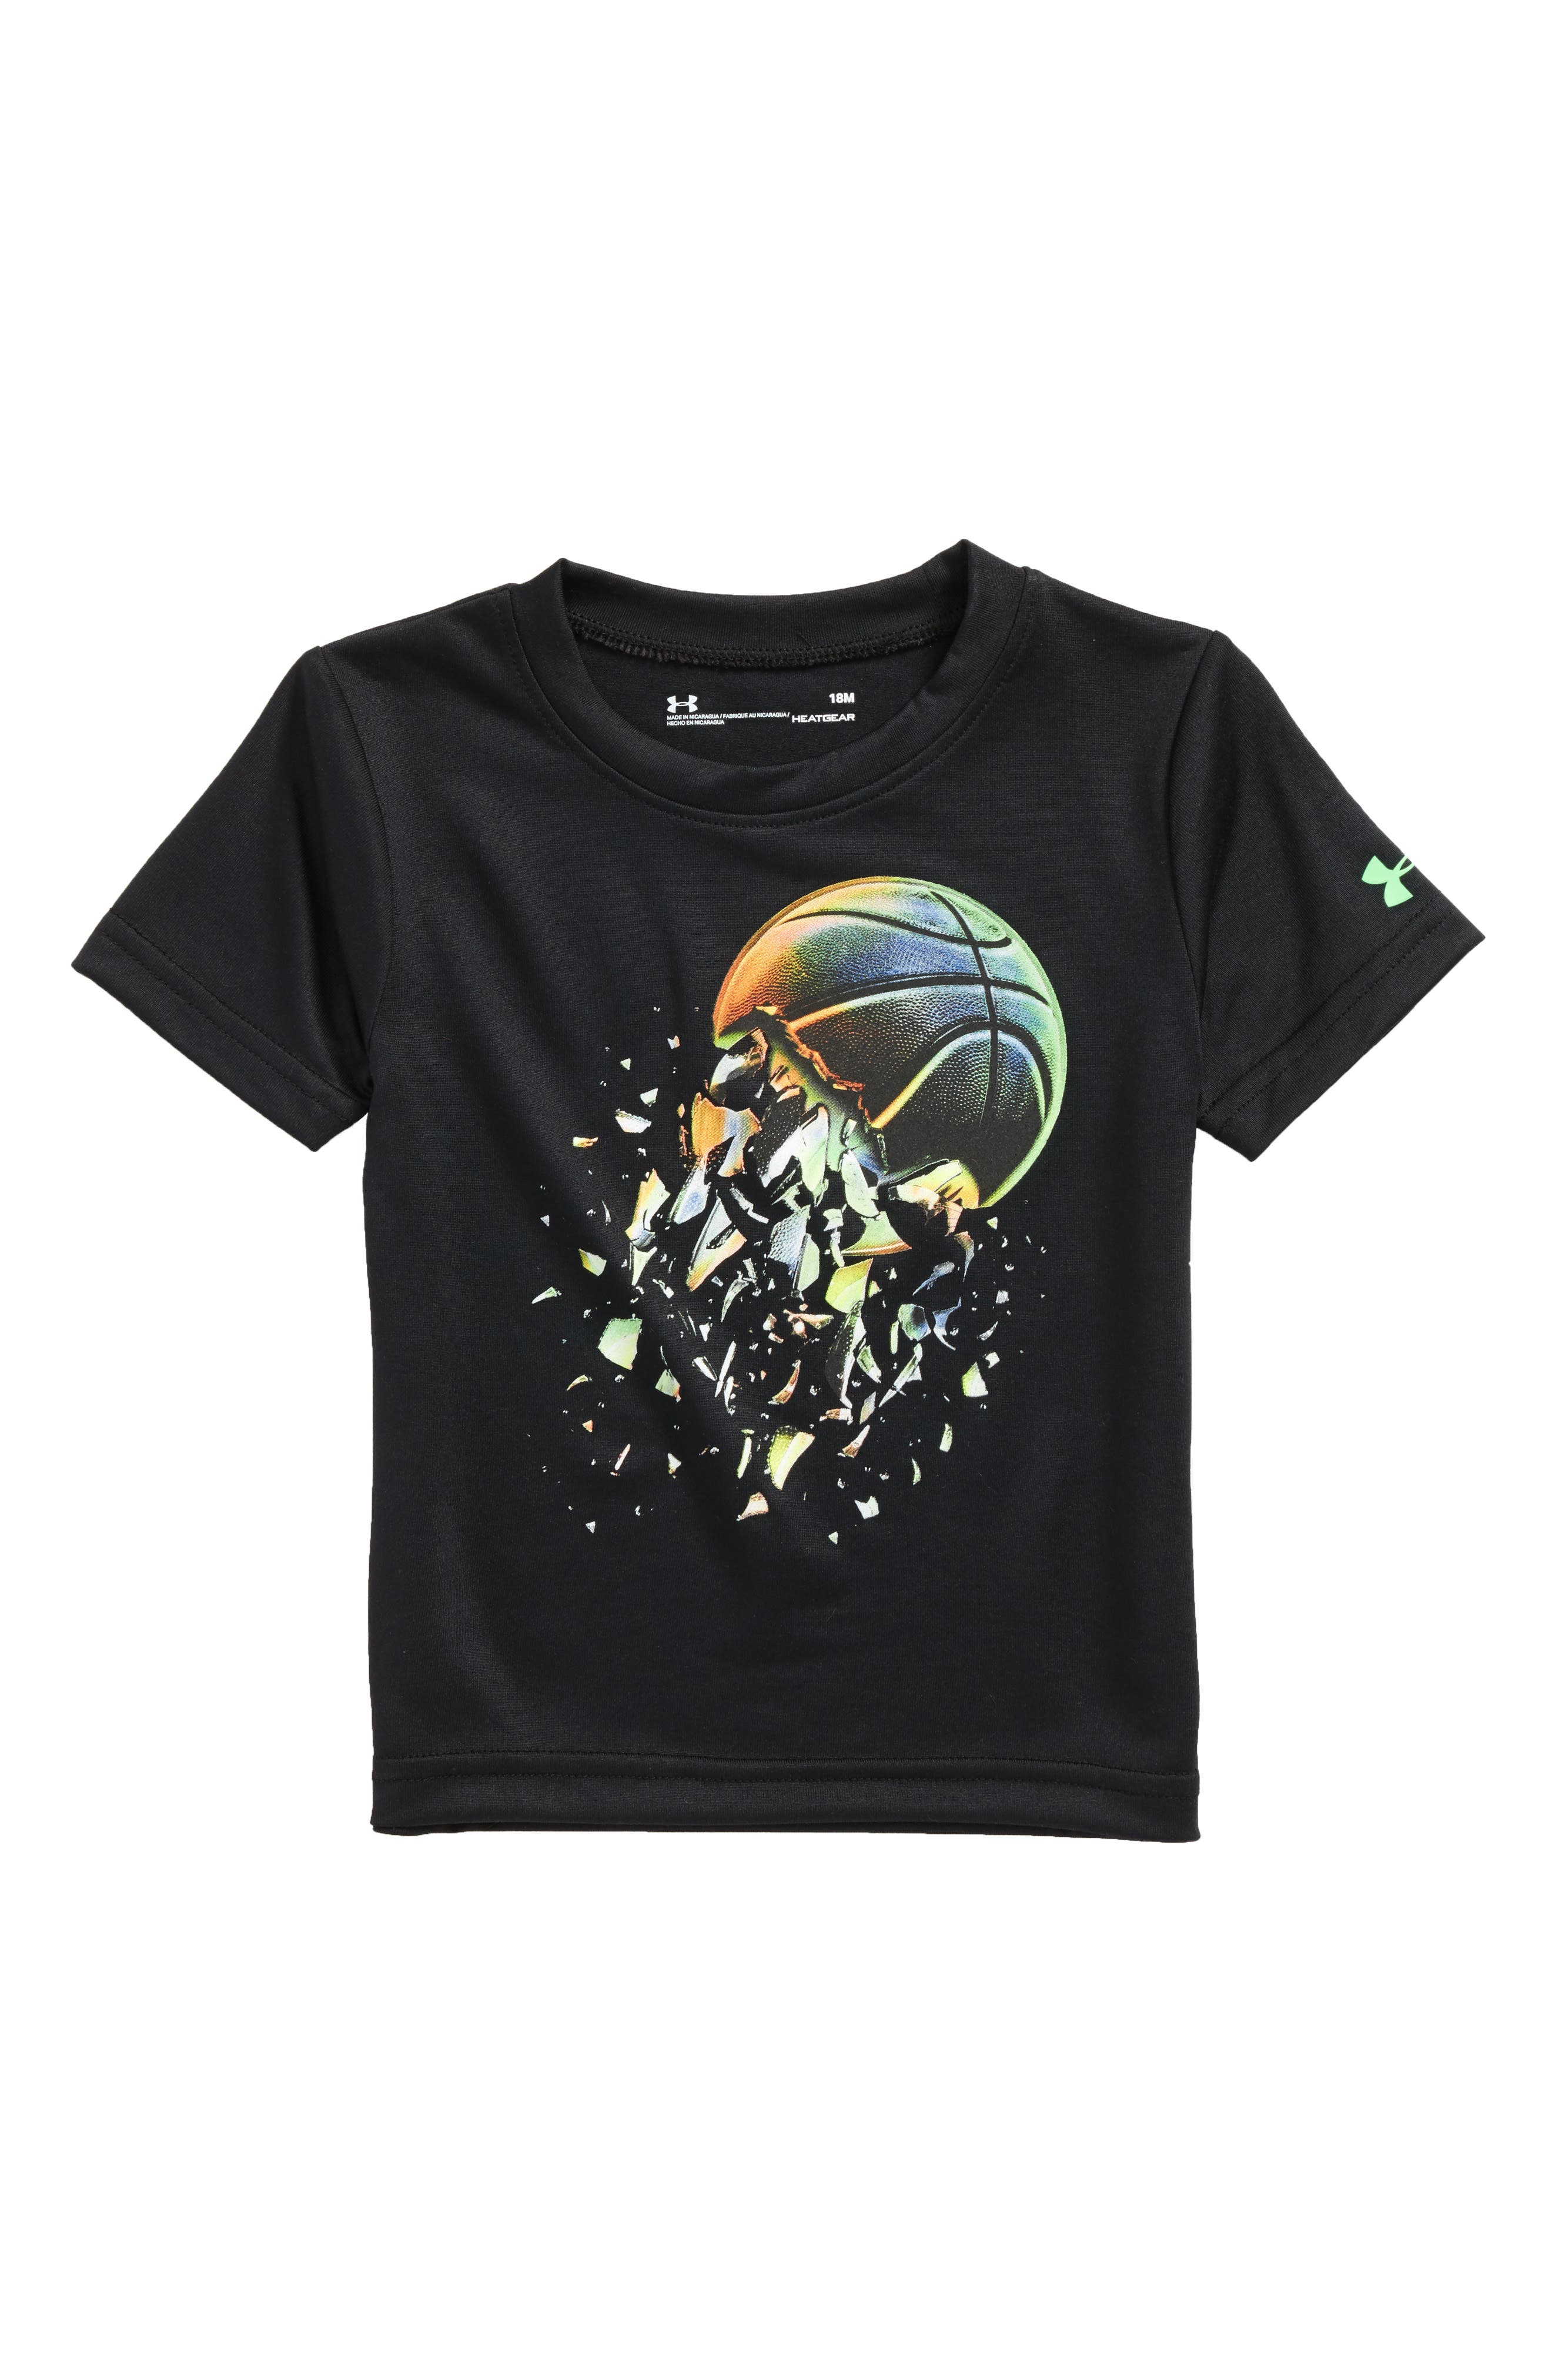 Main Image - Under Armour Basketball Explosion Graphic HeatGear® T-Shirt (Baby Boys)